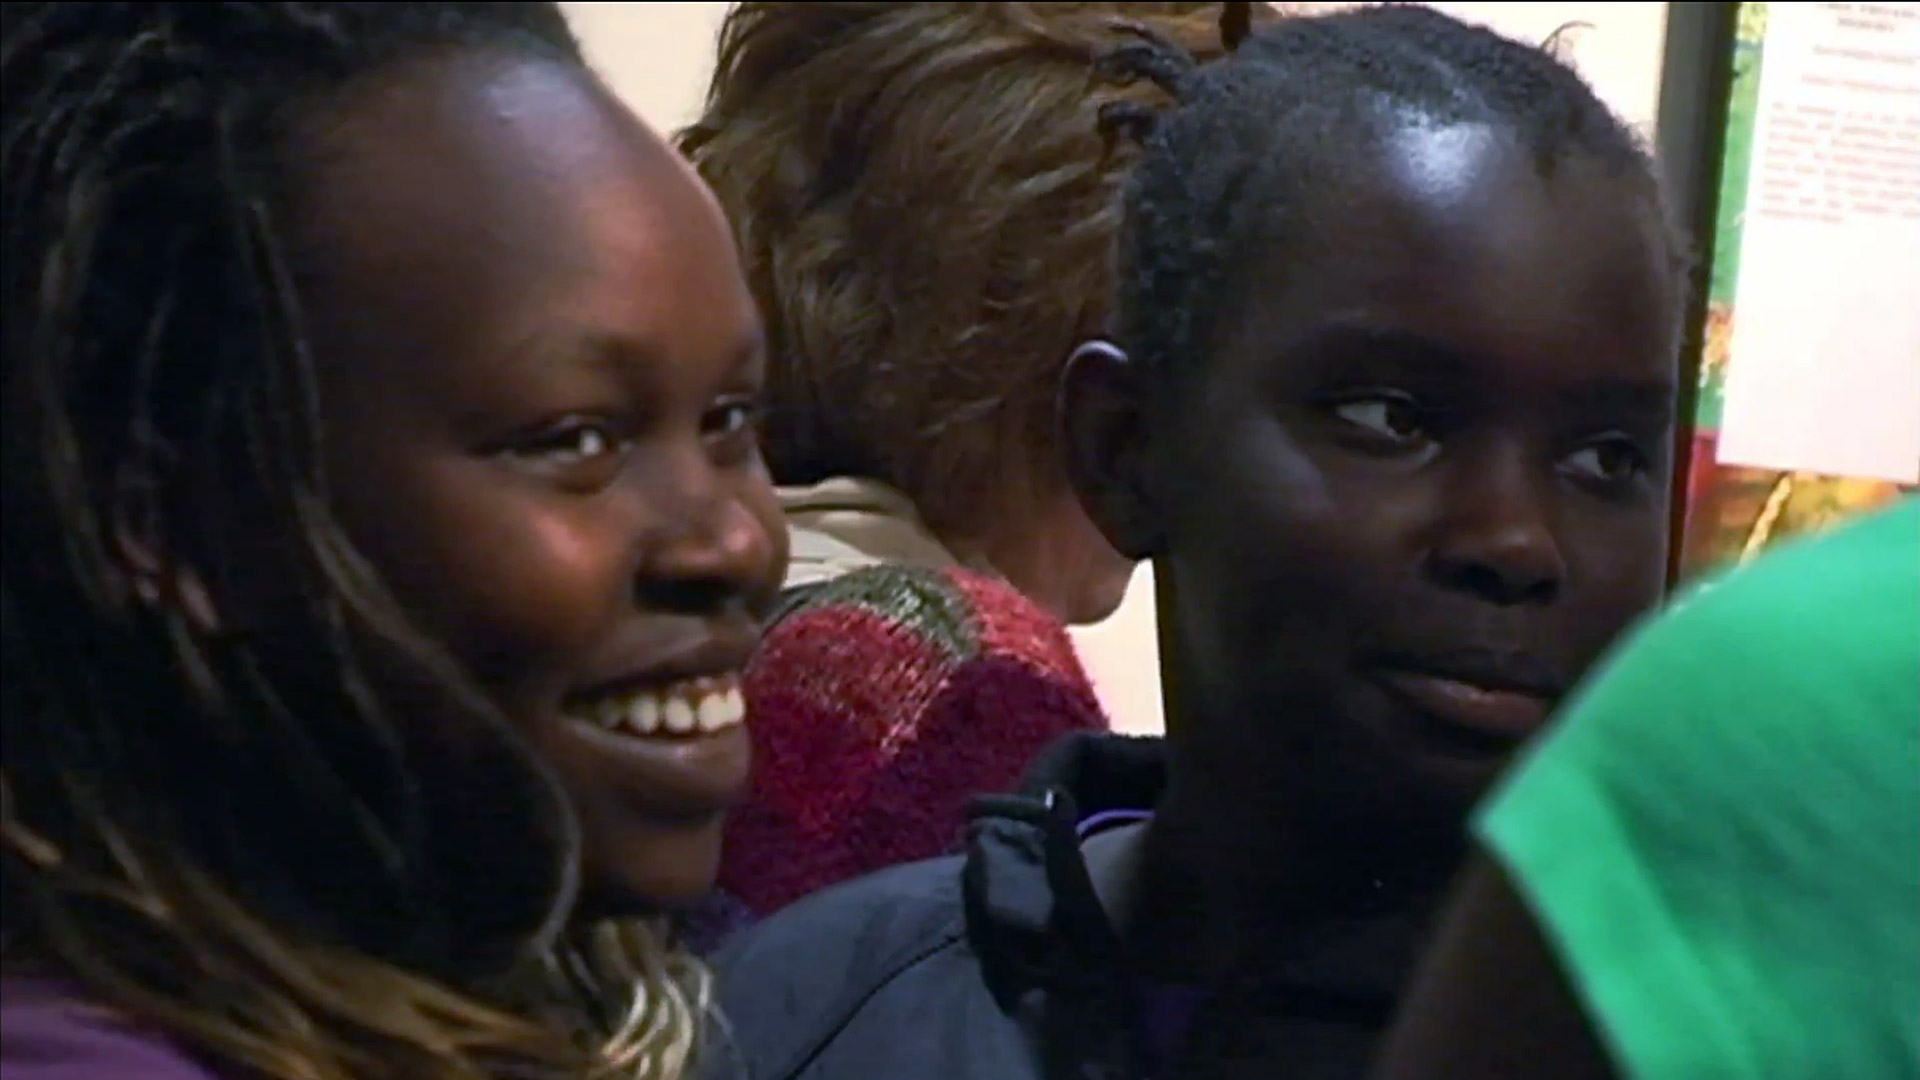 Wajdan & Nyarieka at the quilt exhibition. From the documentary The Quilted Conscience